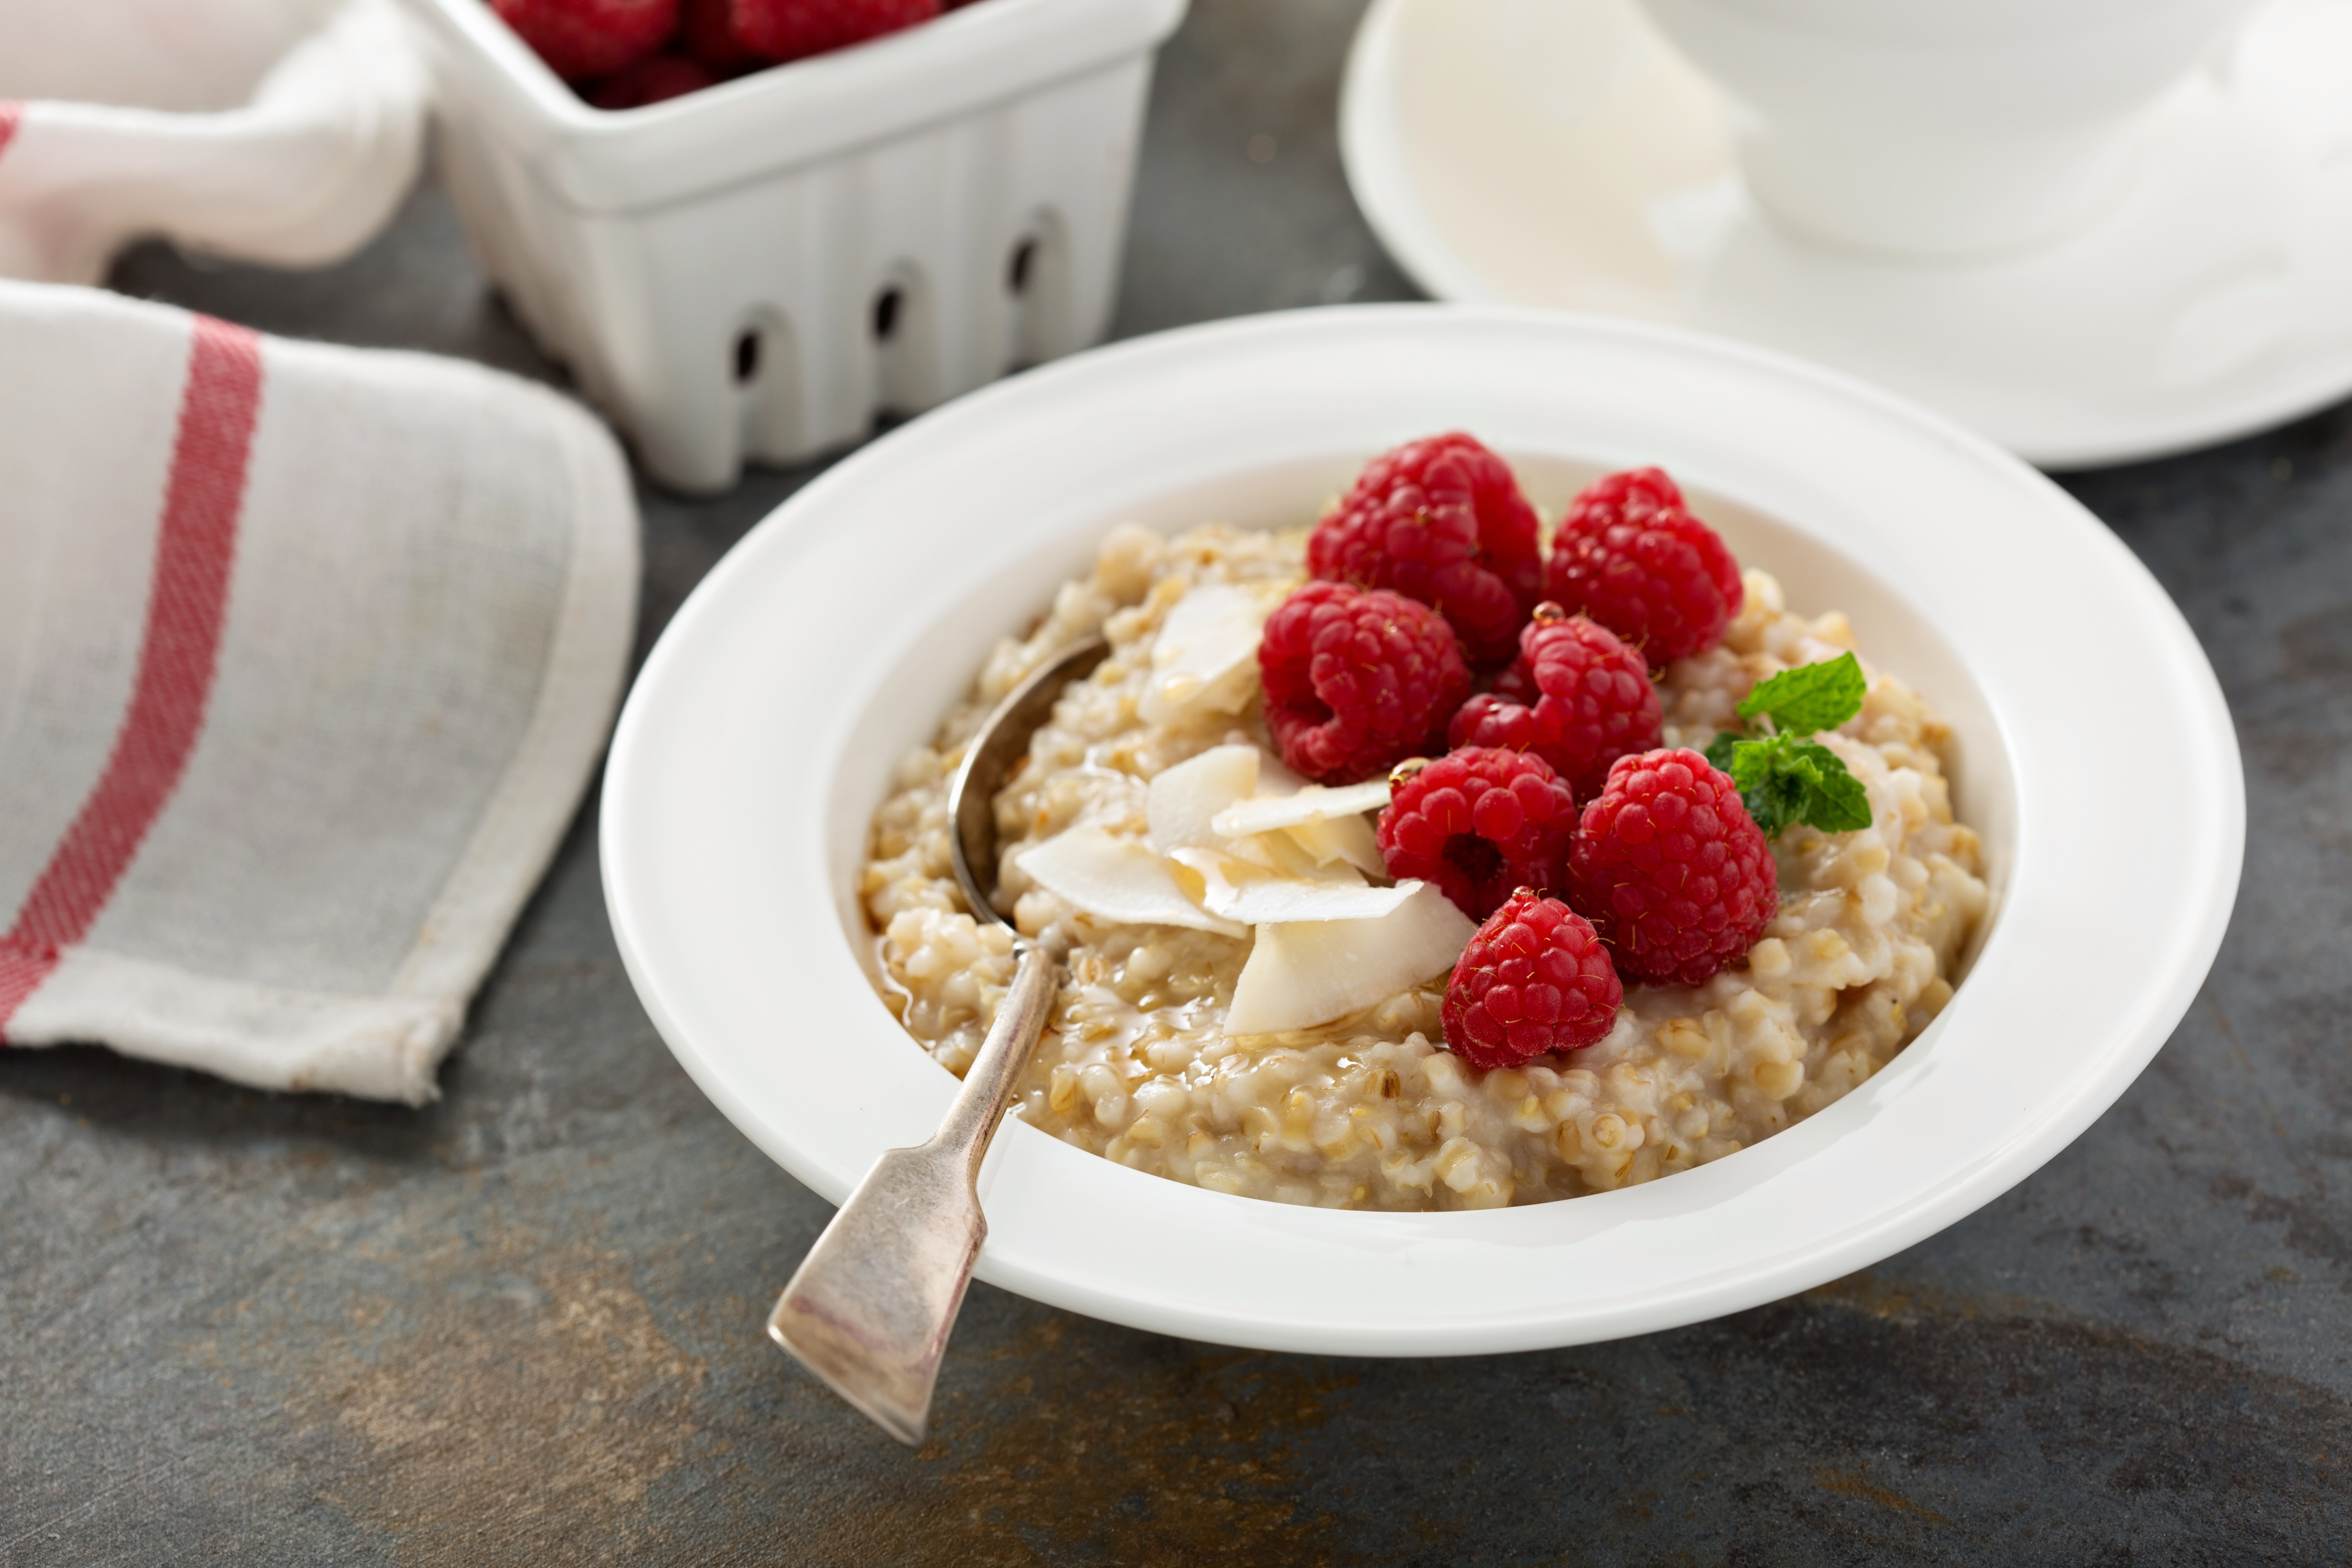 What Are the Benefits of Steel Cut Oats? - Bob's Red Mill Blog